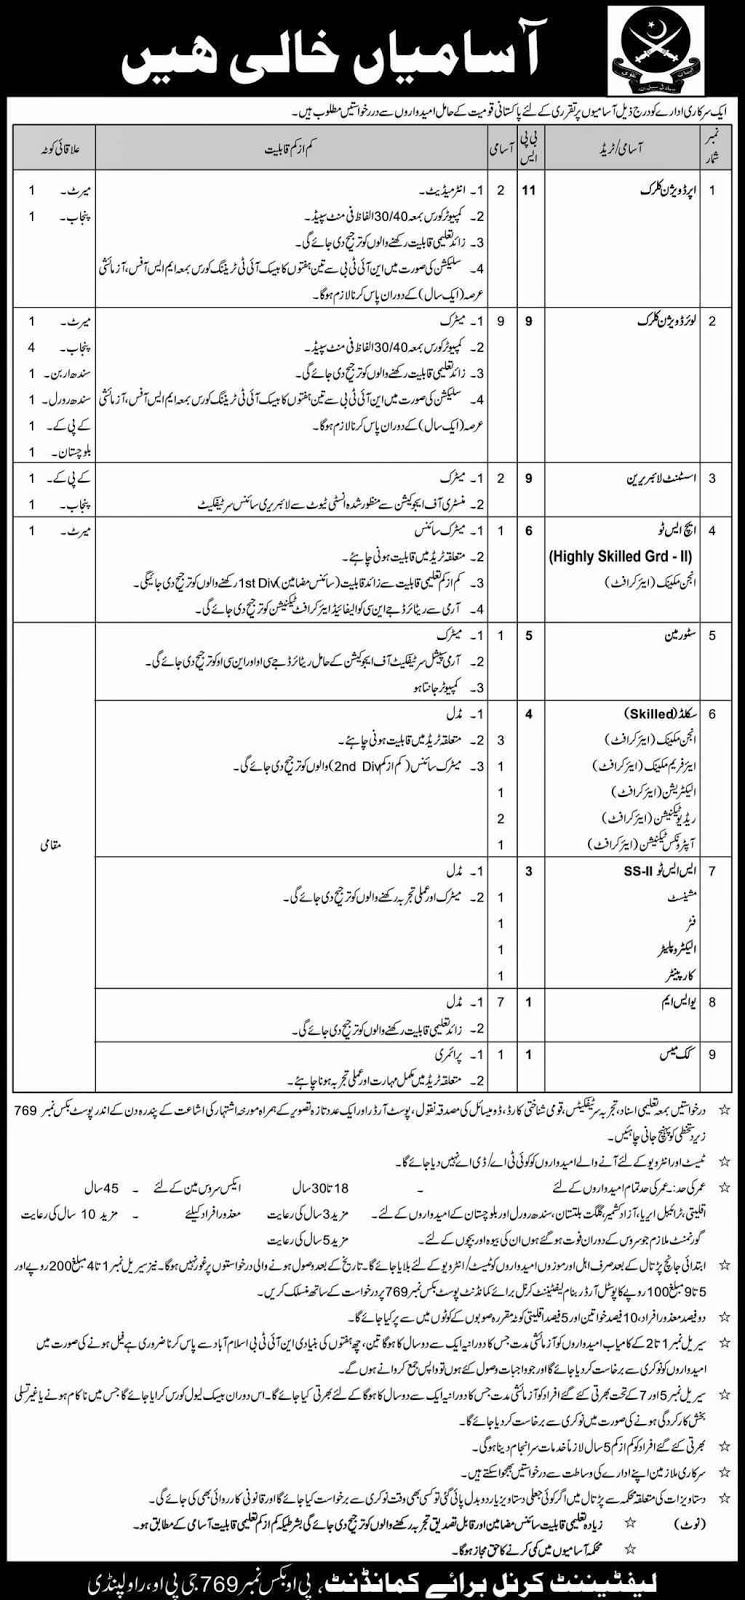 Pakistan Army Jobs 2020 for UDC, LDC, Assistant Librarian & more